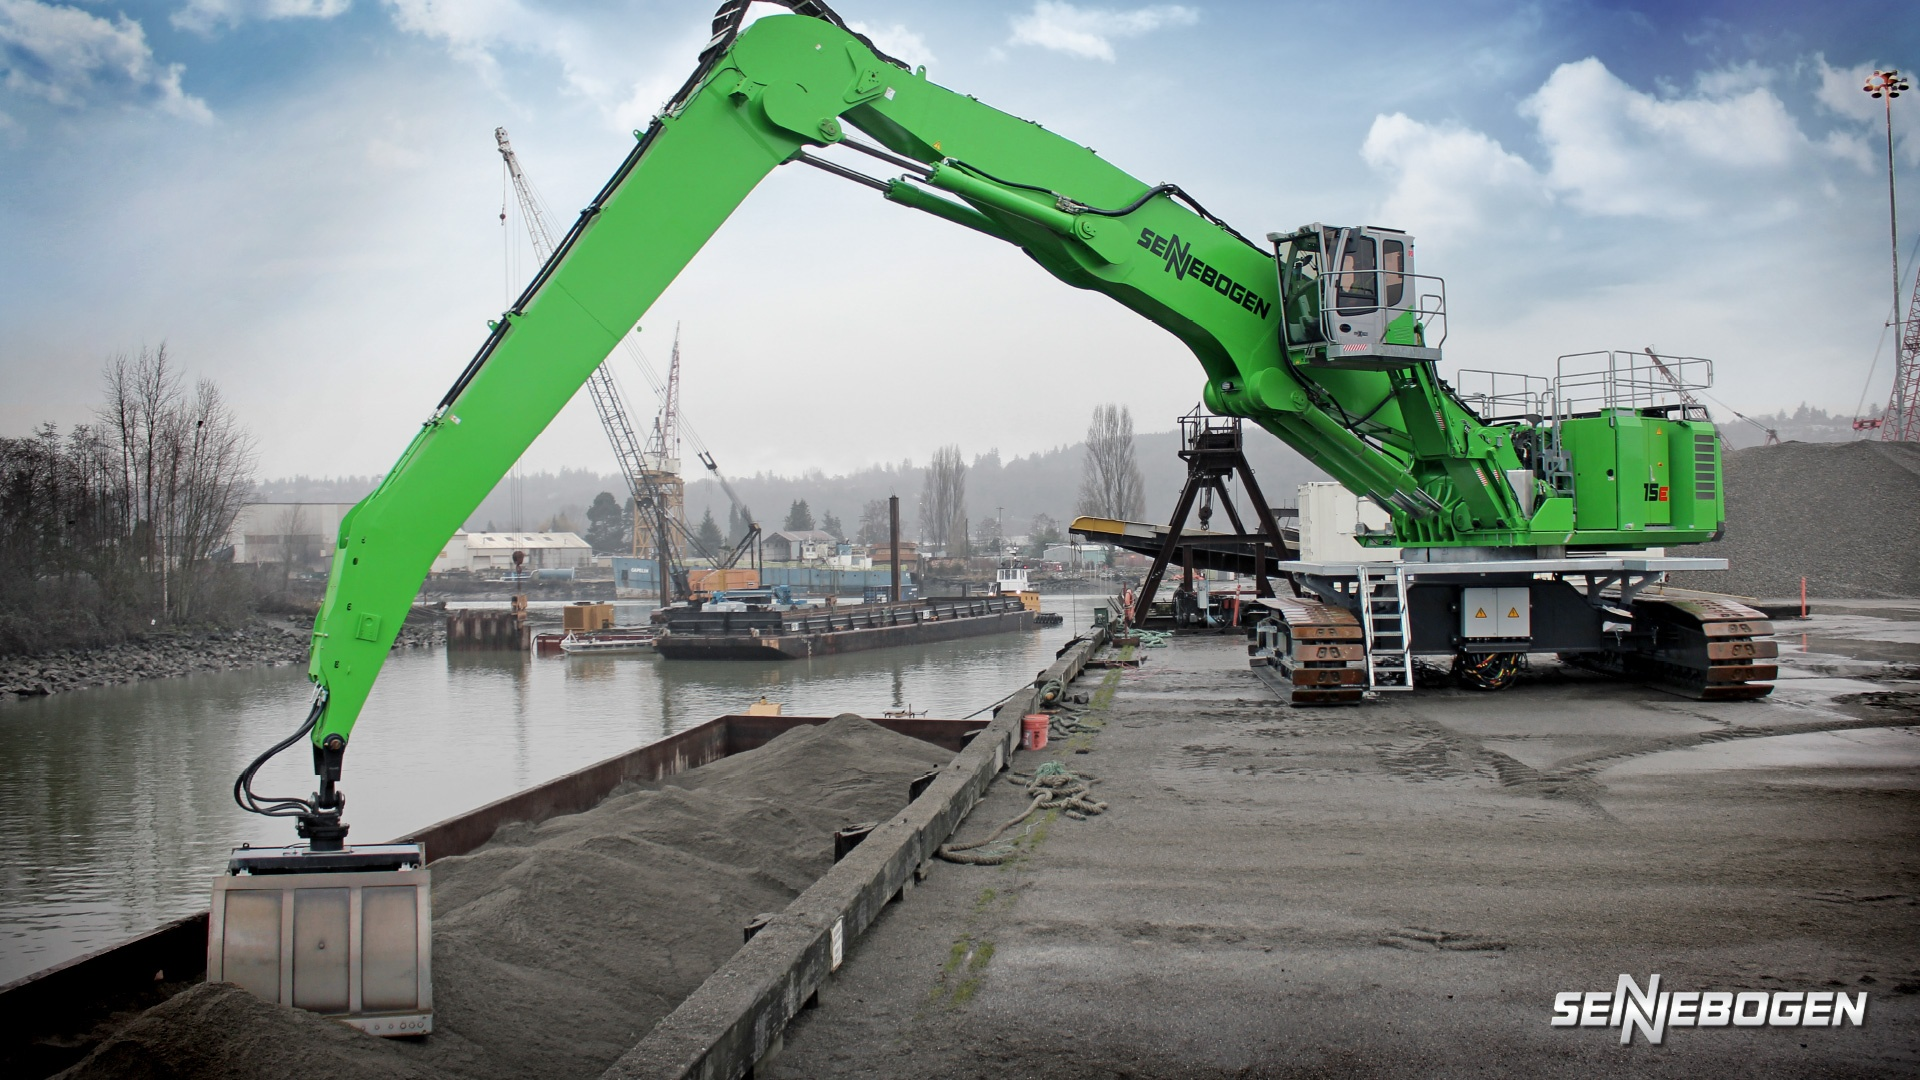 Port equipment maintenance, port equipment, sennebogen